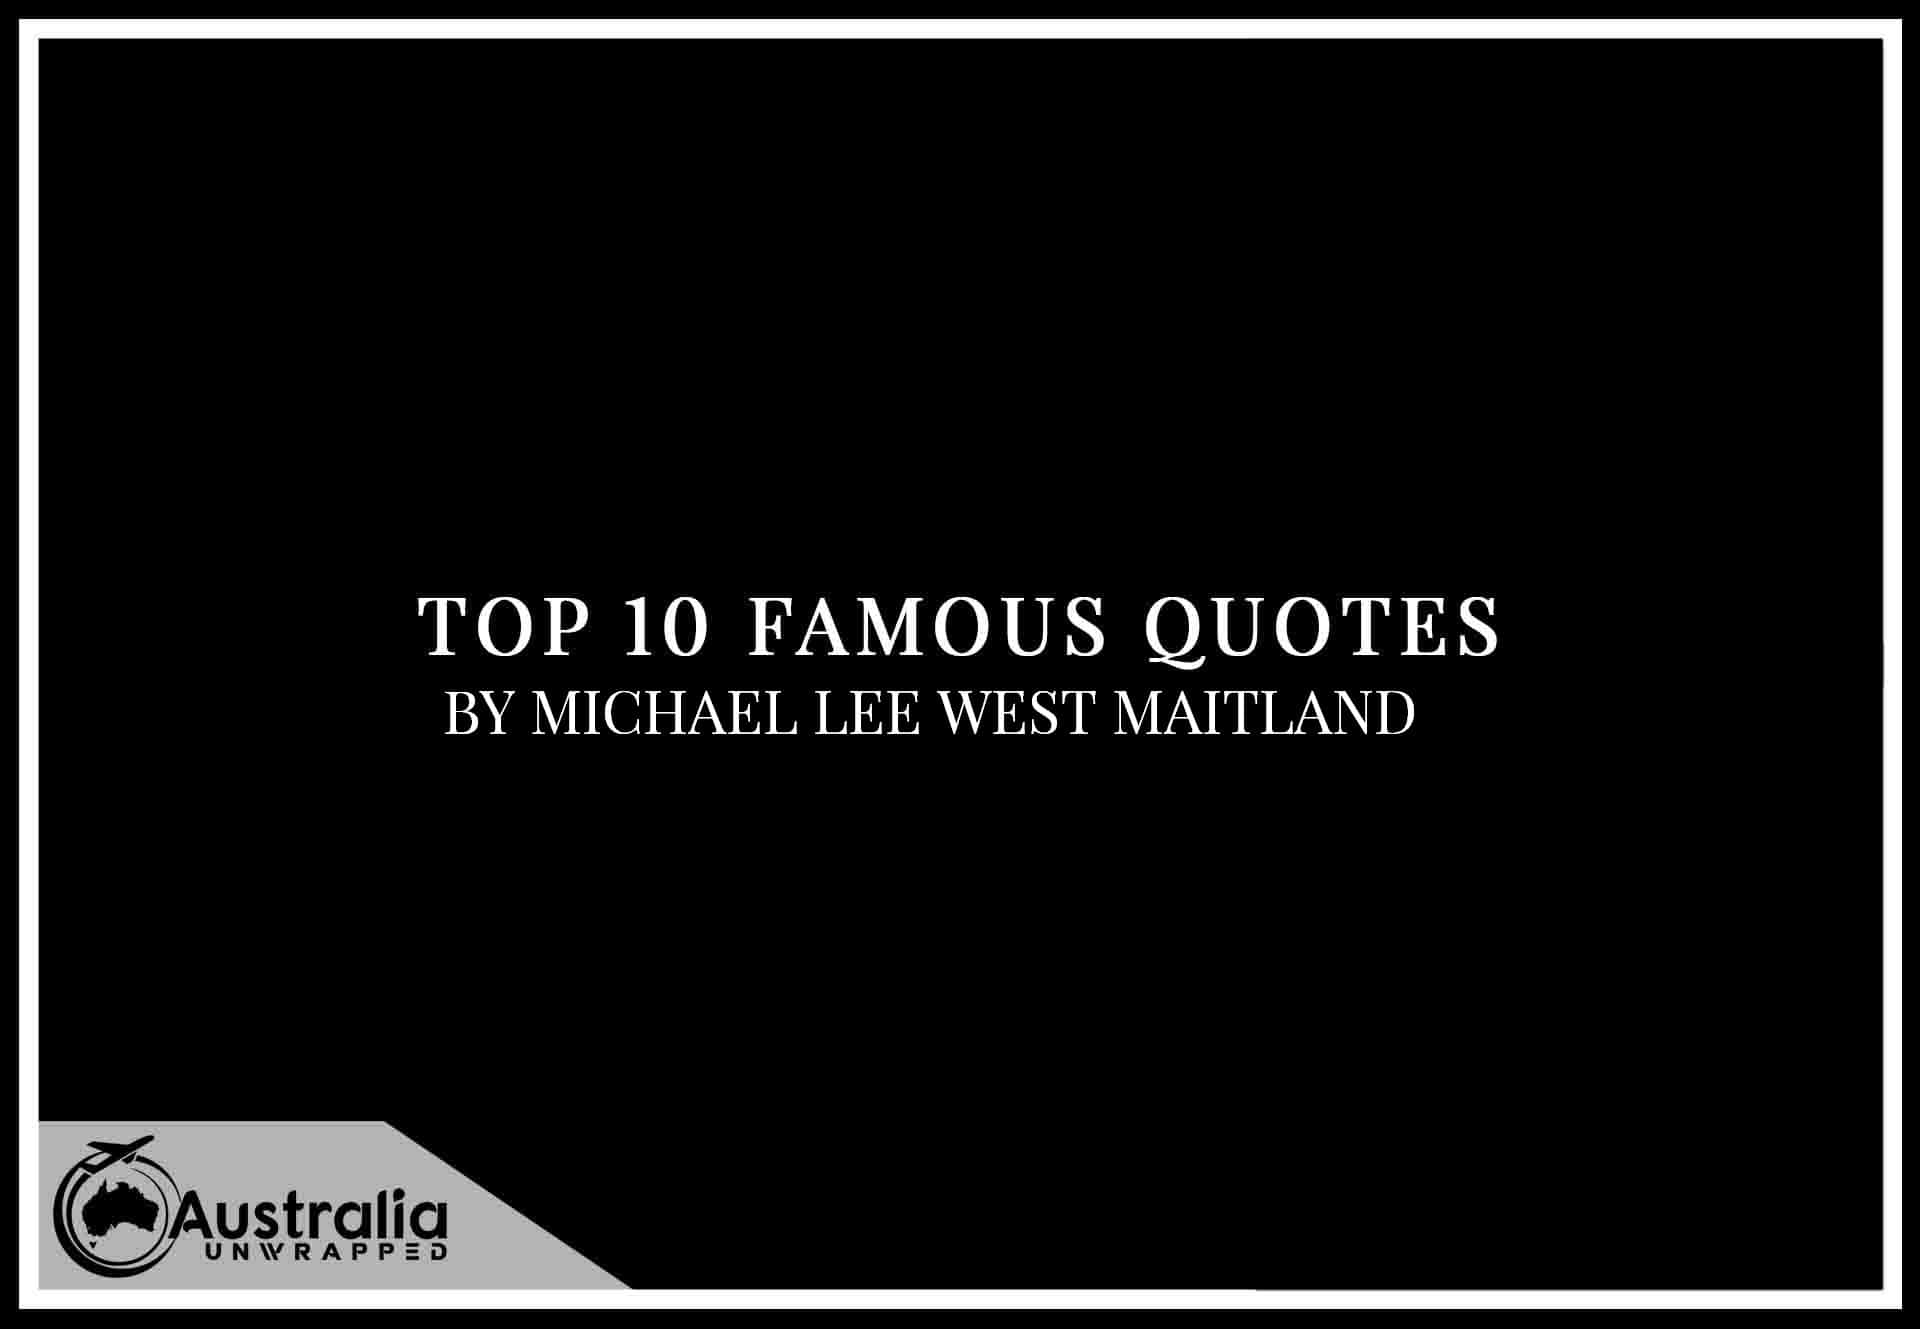 Top 10 Famous Quotes by Author Michael Lee West